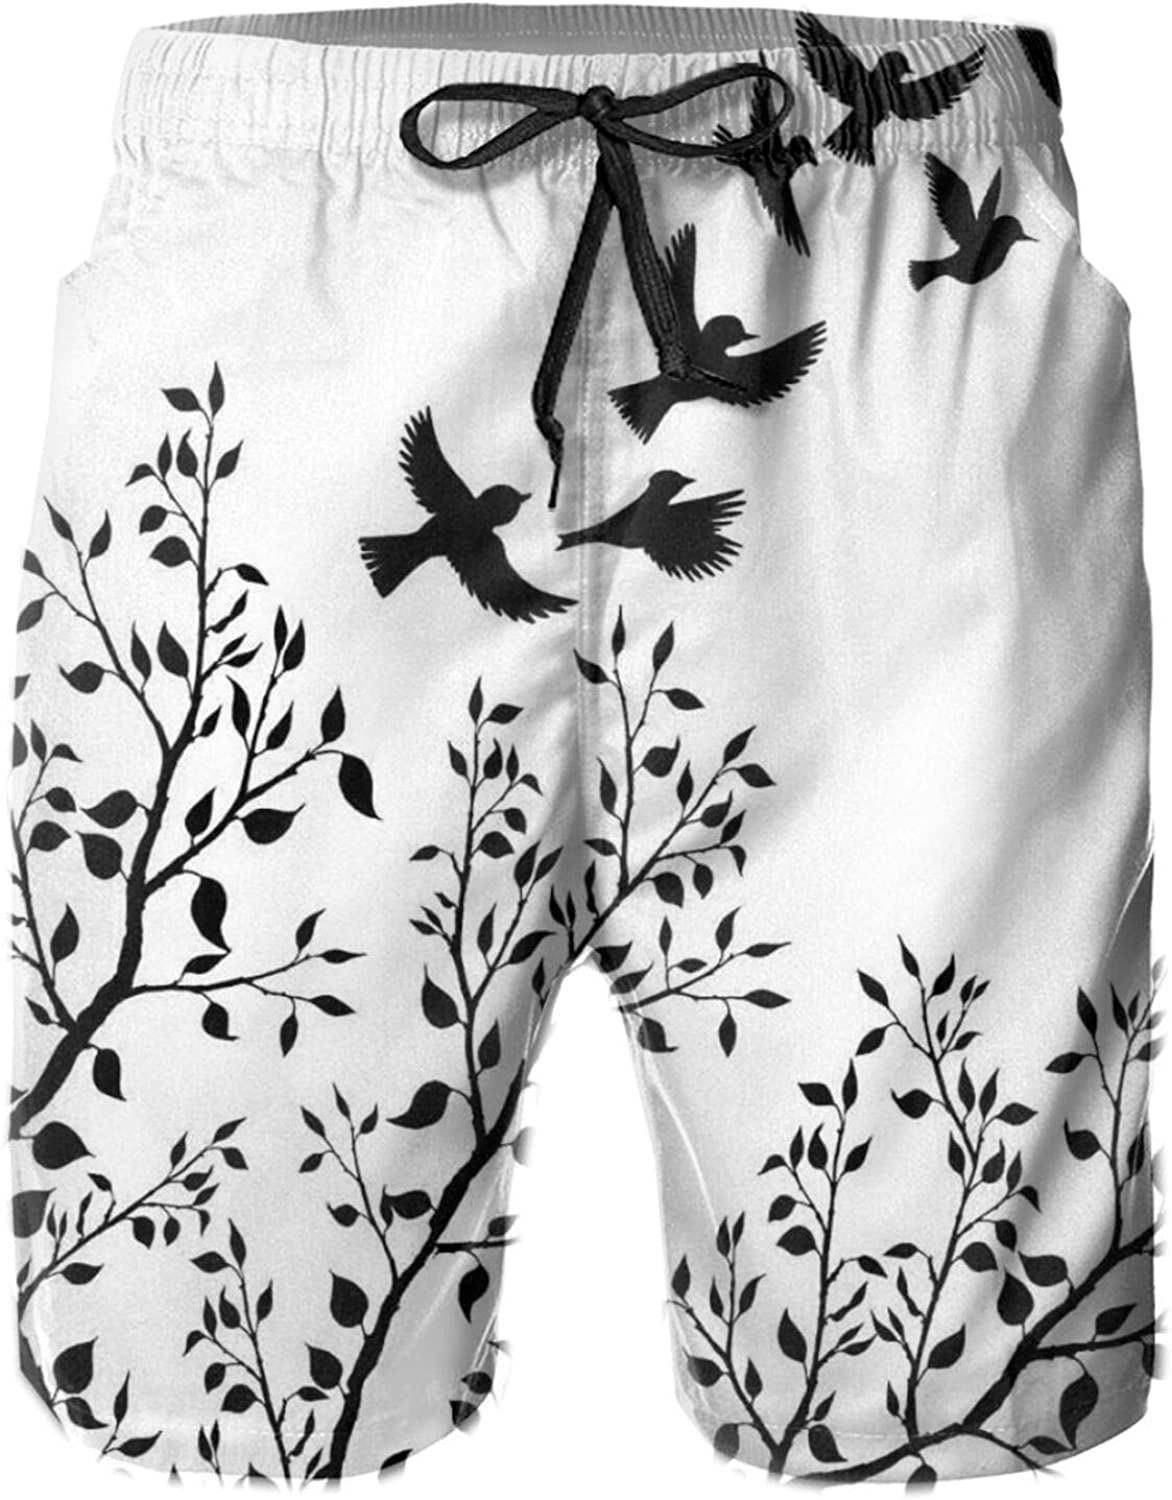 Flock of Birds Flying Away from A Tree with Leafy Branches Black Silhouettes Swimming Trunks for Men Beach Shorts Casual Style,L